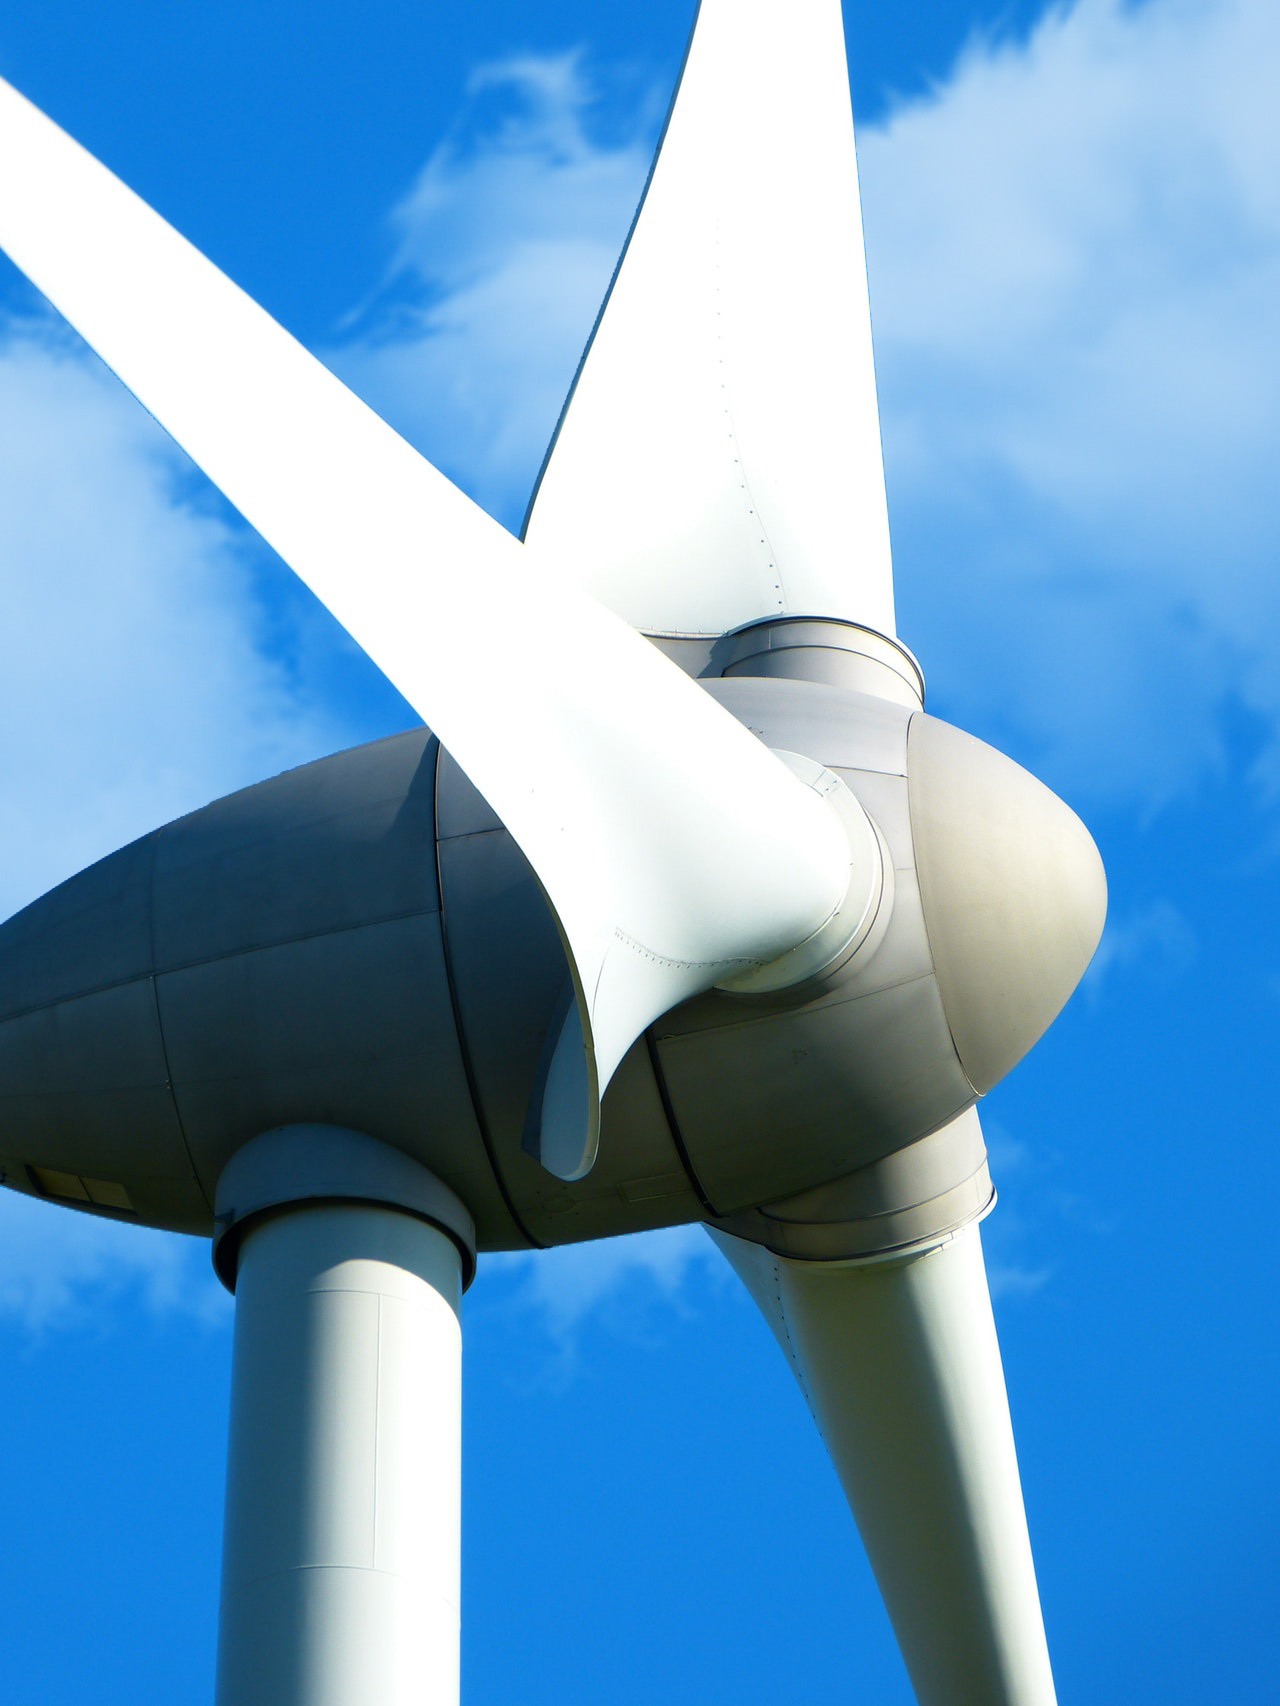 Wind Turbine Flicker: Separating Myth from Reality